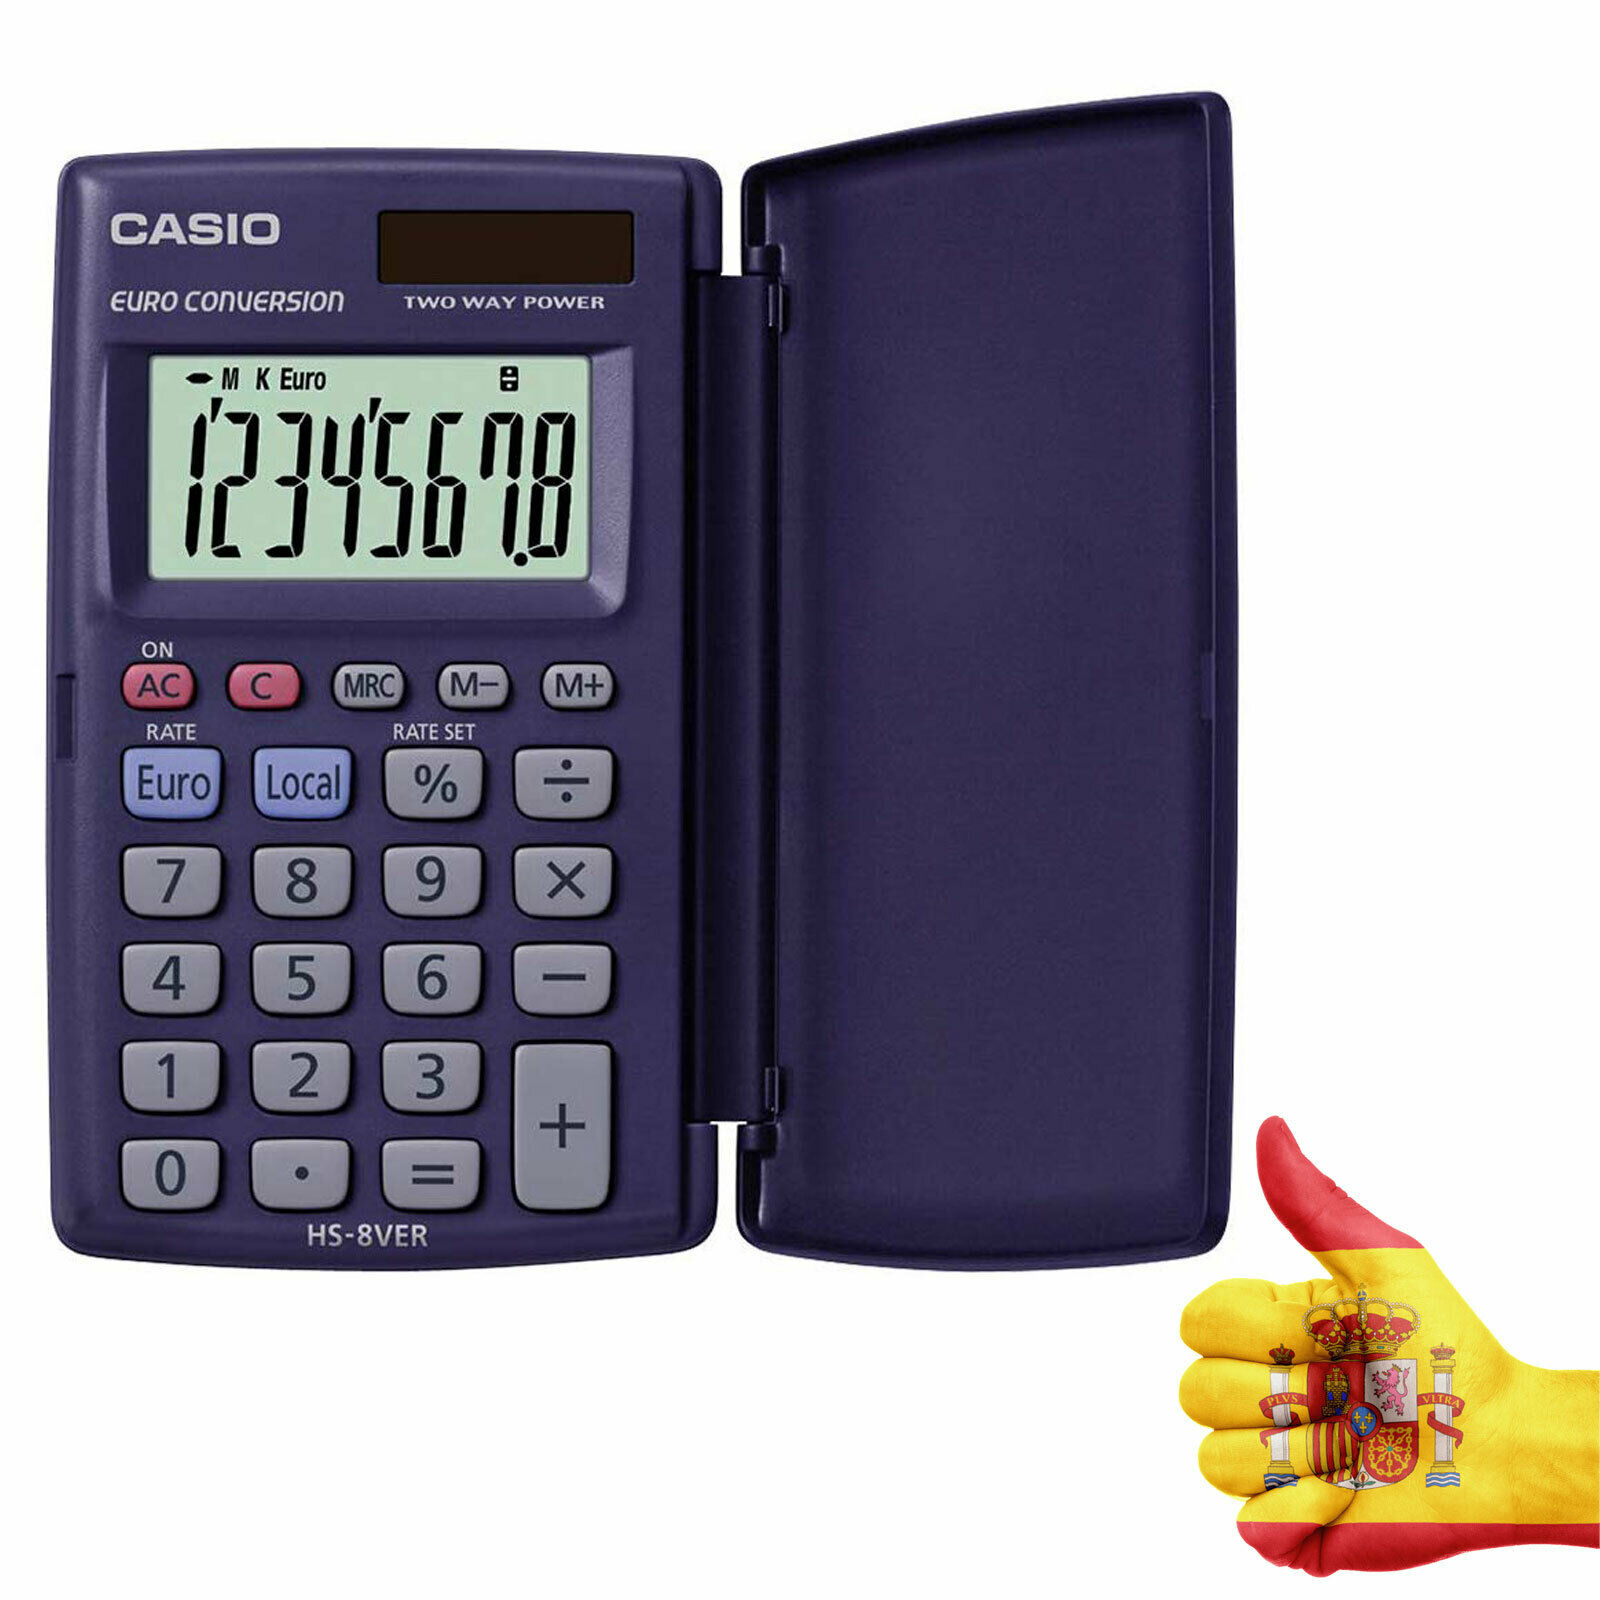 POCKET CALCULATOR 8 DIGIT CASIO HS-8VER School Student School Children